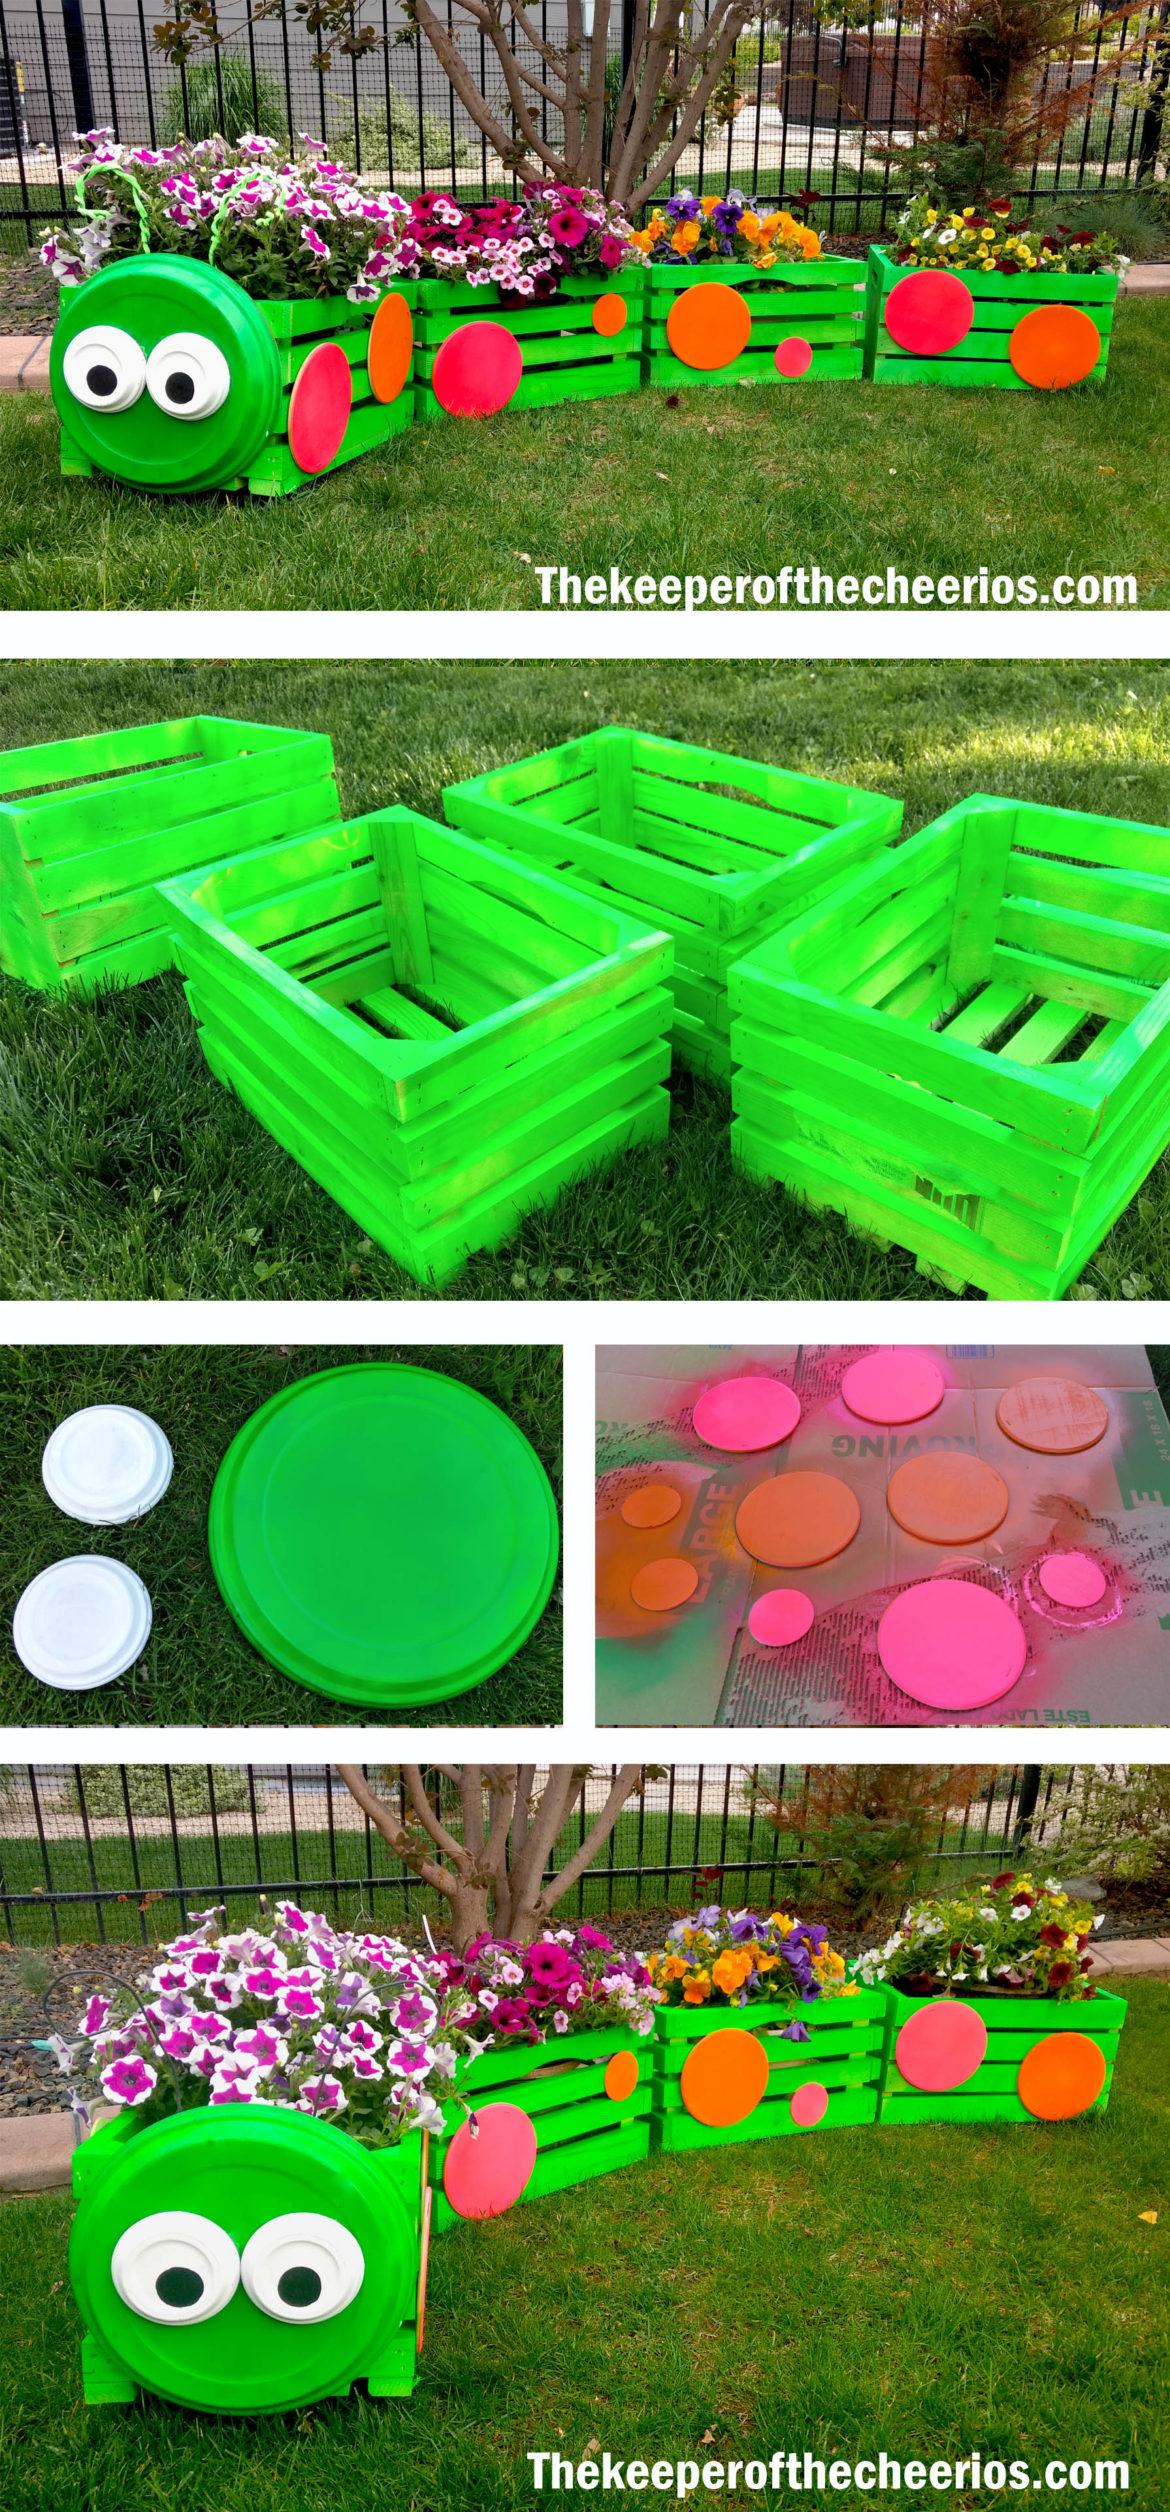 Caterpillar Crate Planter The Keeper Of The Cheerios